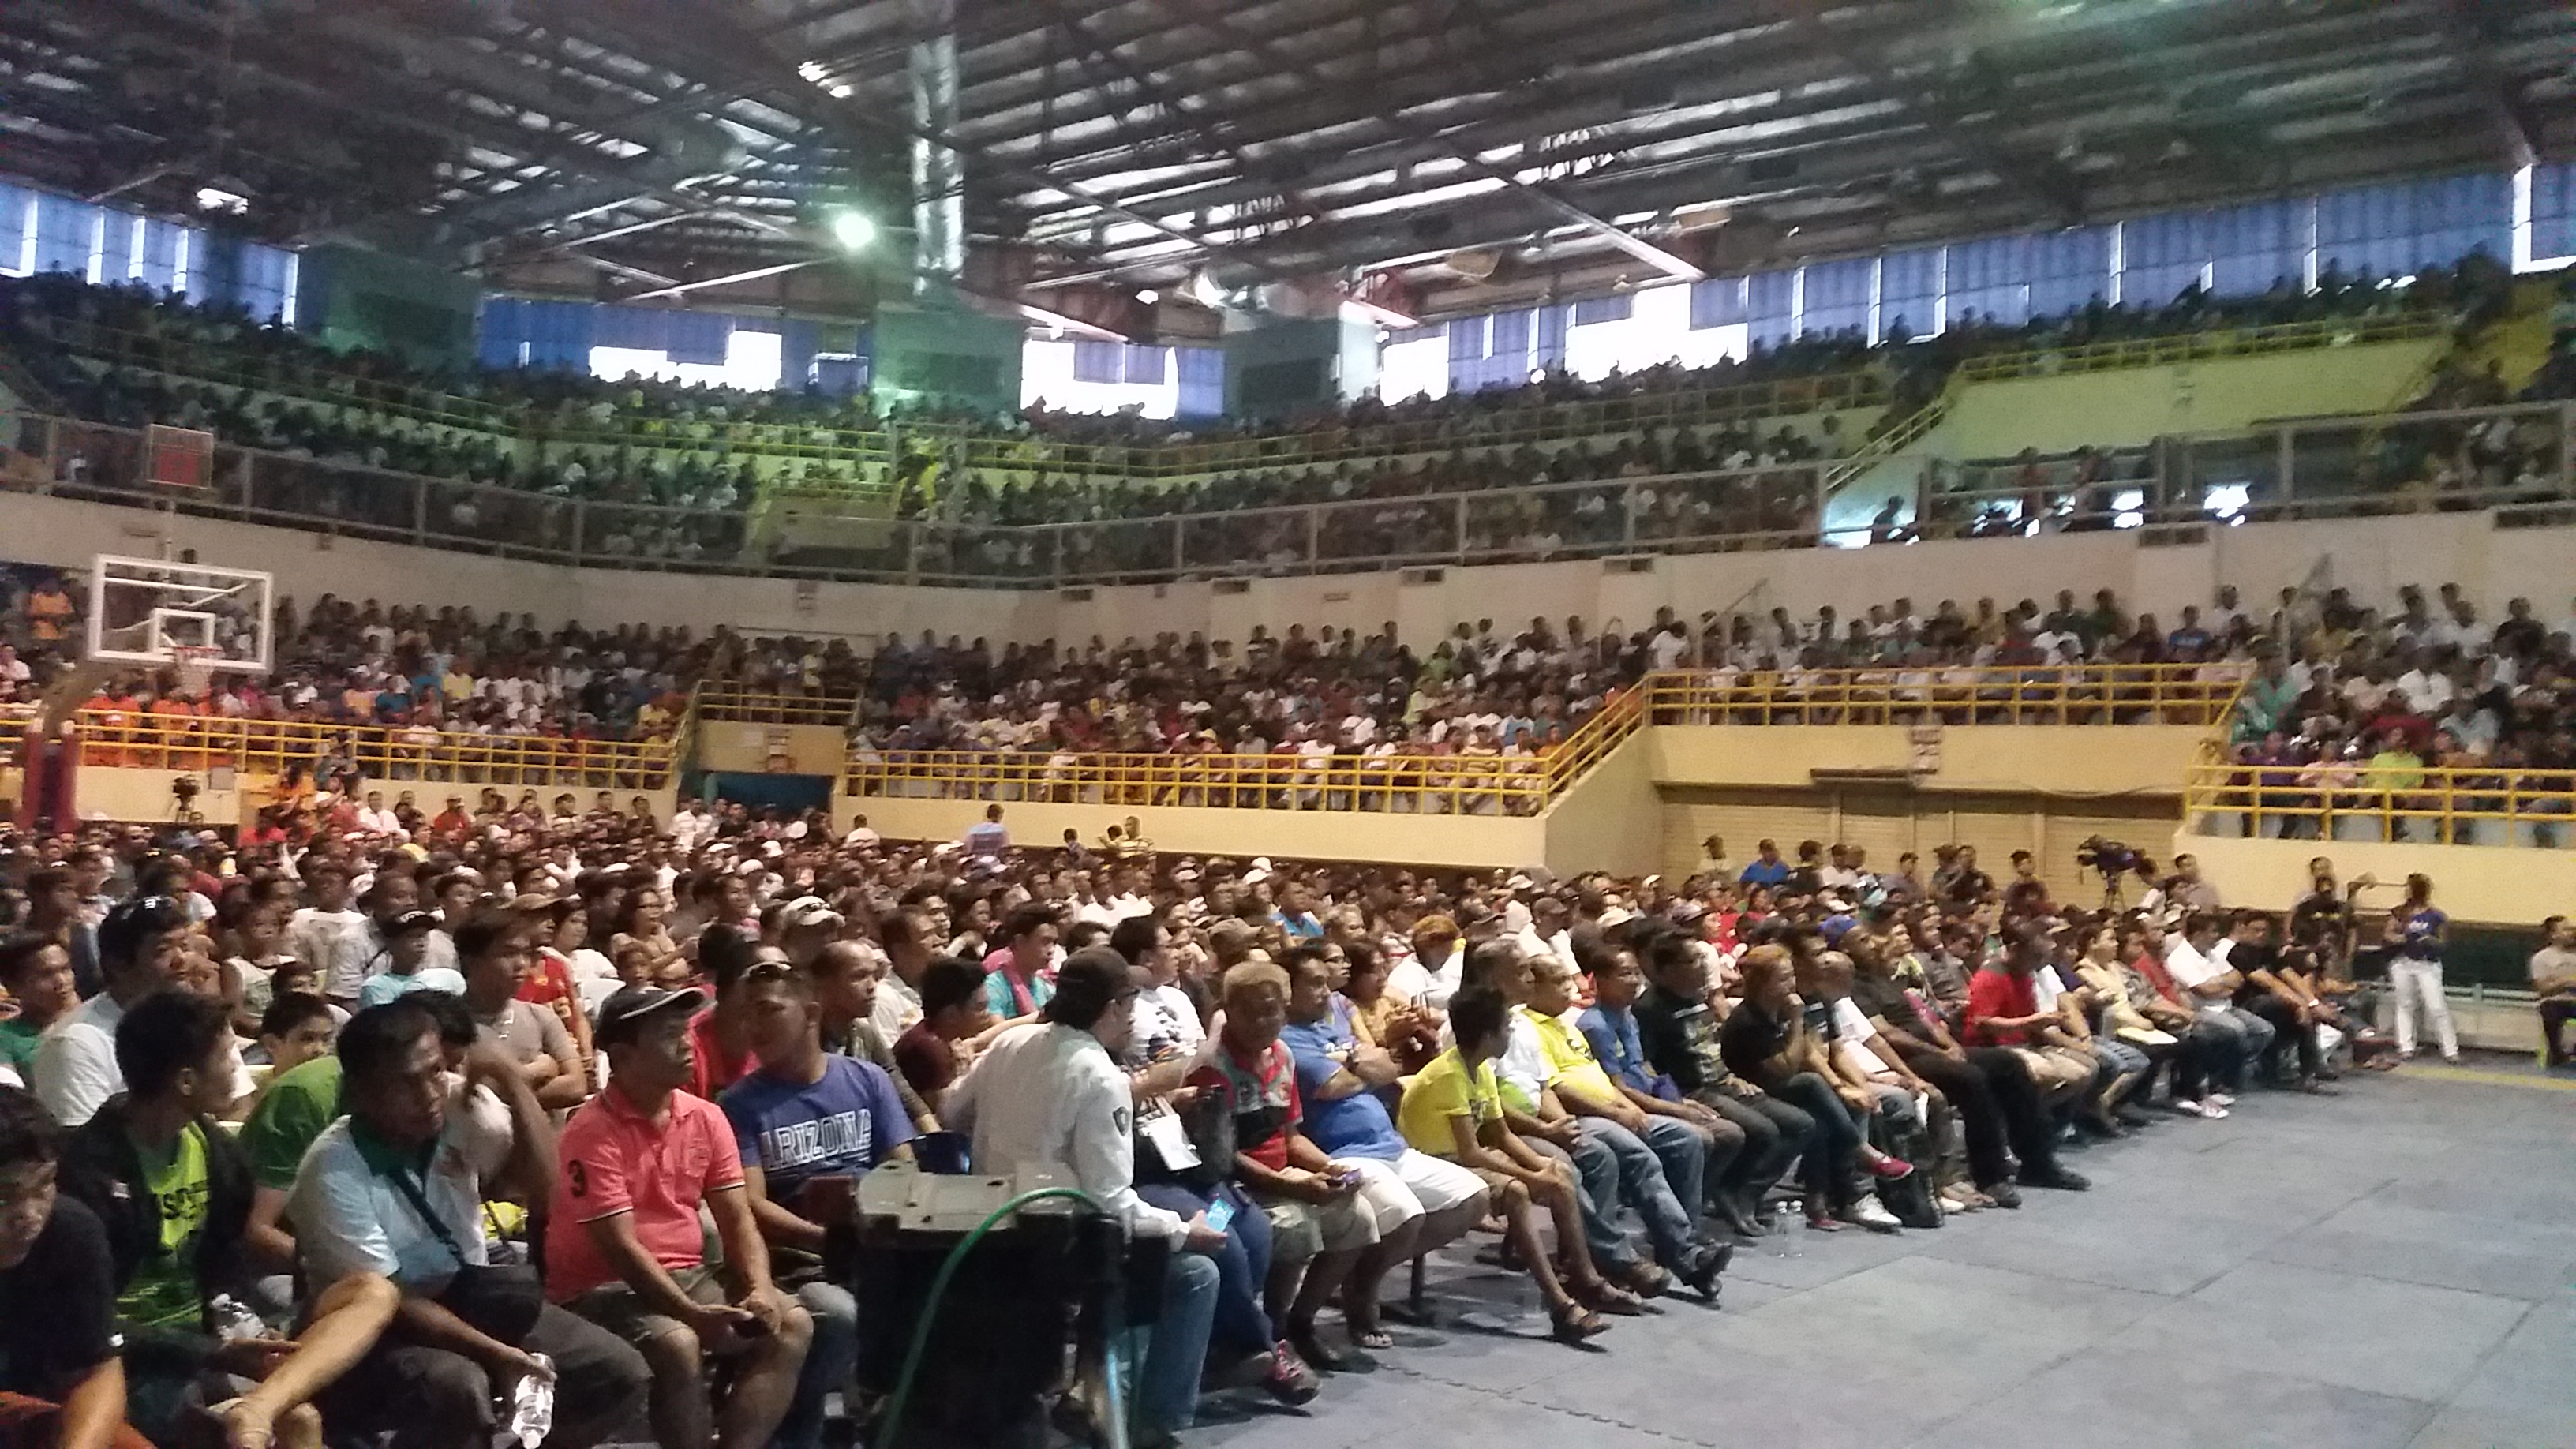 People watch Manny Pacquiao's fight against Floyd Mayweather at the Lagao Gymnasium in General Santos City, the Philippines, on May 3, 2015